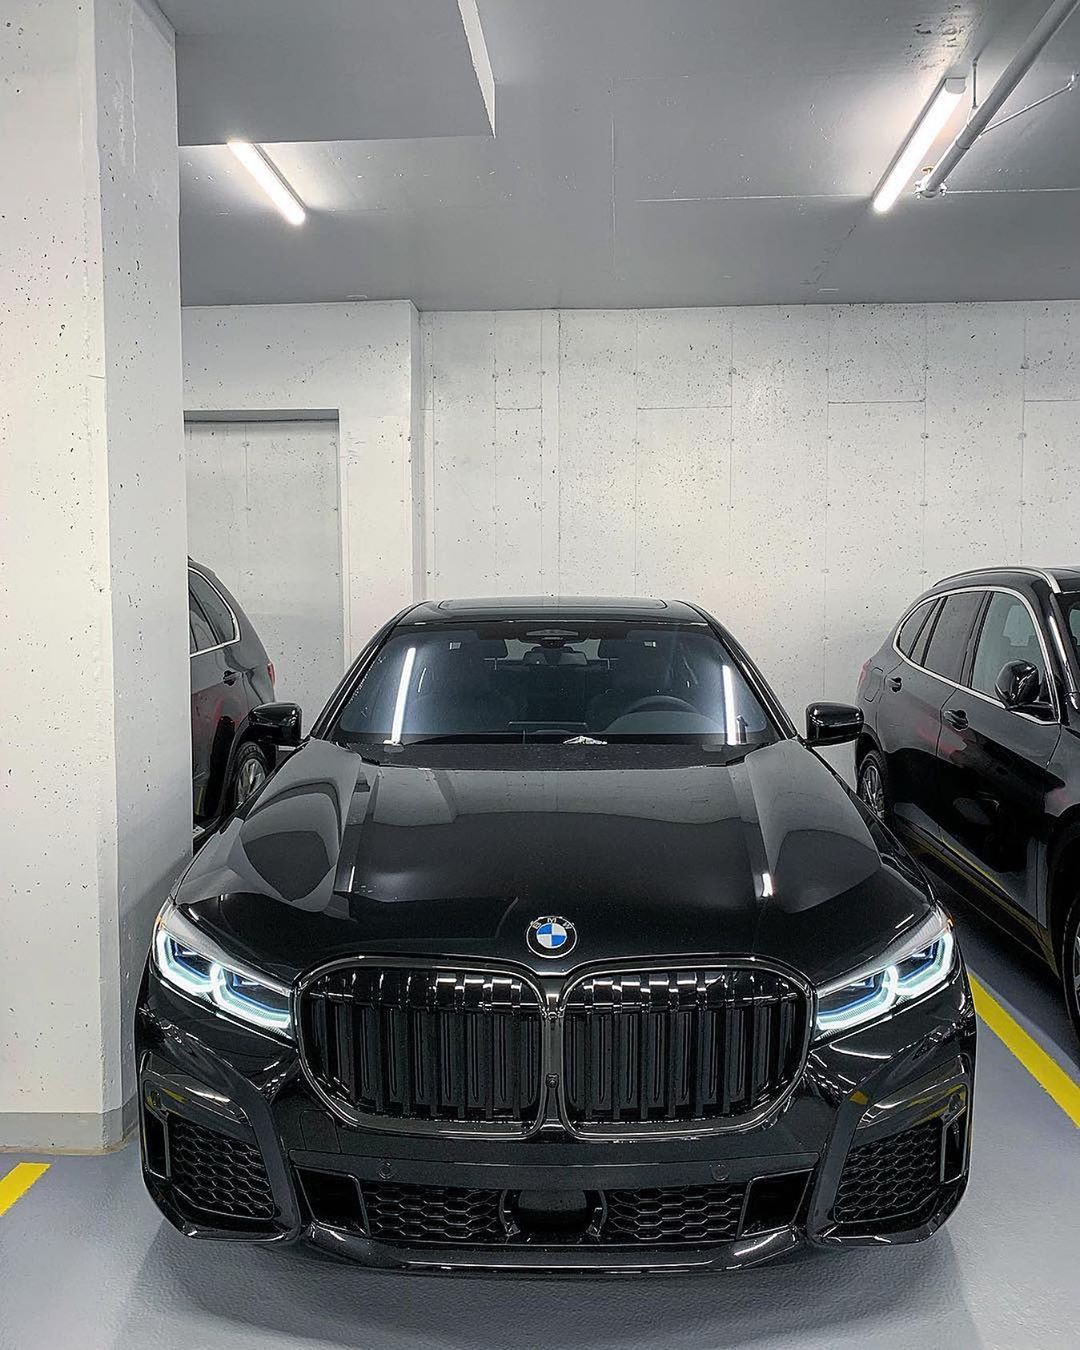 Bmw 750li Lci M Sport Package Sapphire Black With Shadow Line Extended 4 4l Twinpower Turbo 530 Hp 5500 6000 Rpm Torque 750 Nm Bmw Bmw Touring Bmw Cars